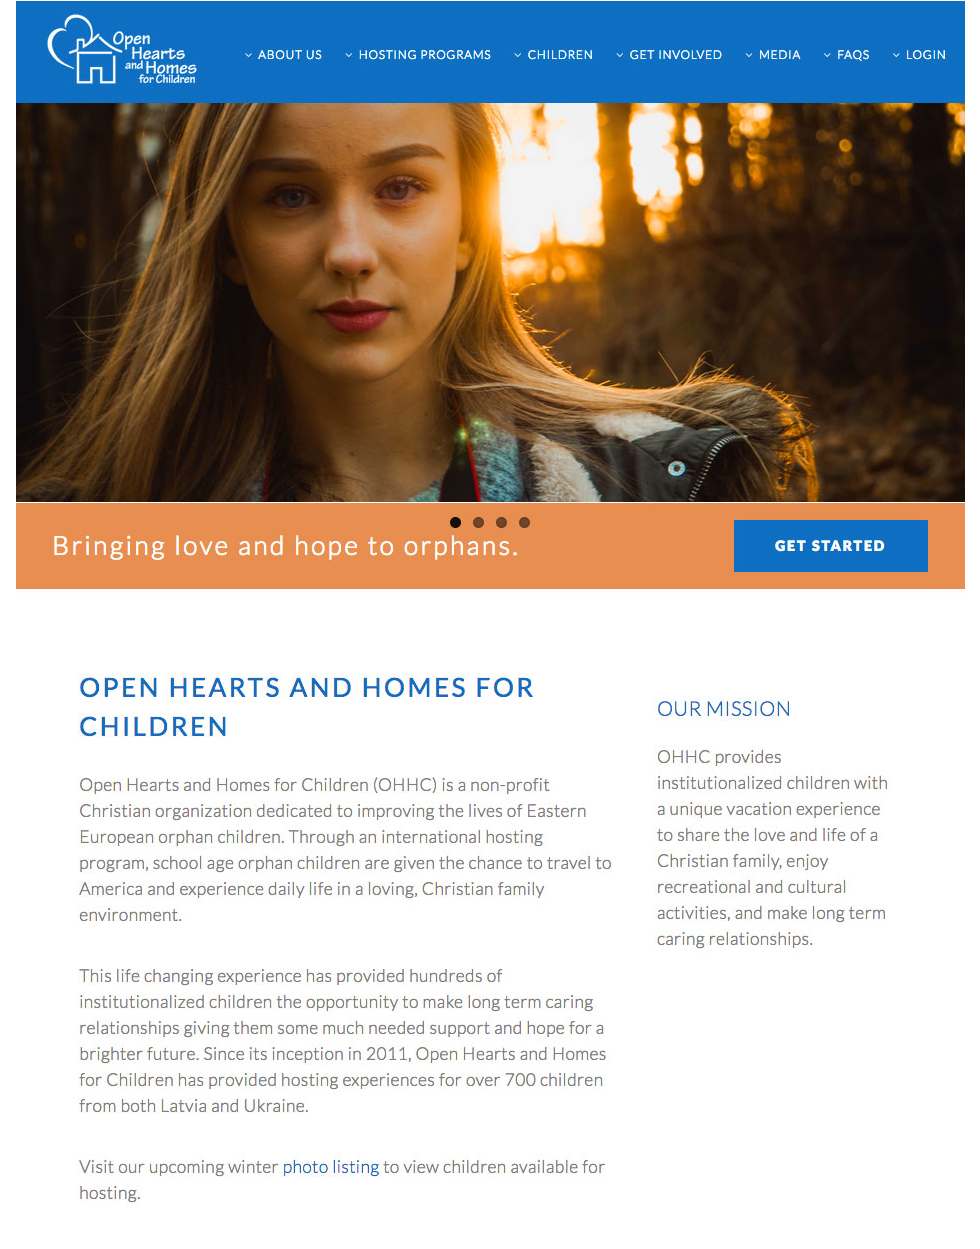 Open Hearts and Homes for Children